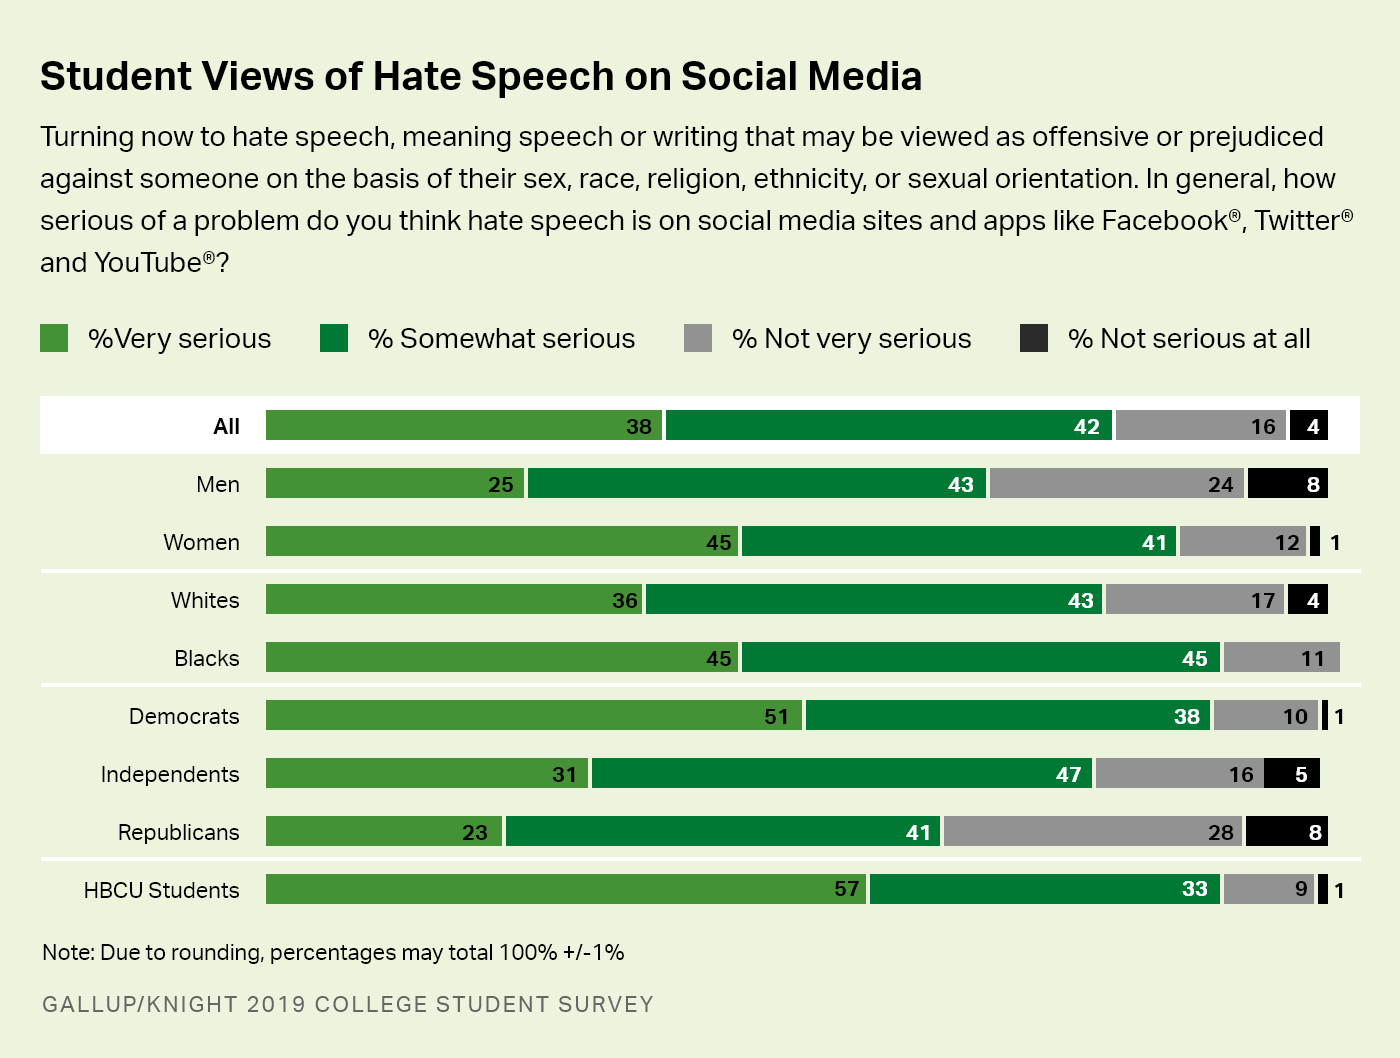 Bar charts. College students' views of how much hate speech is on social media, by gender, race, party affiliation and HBCU.